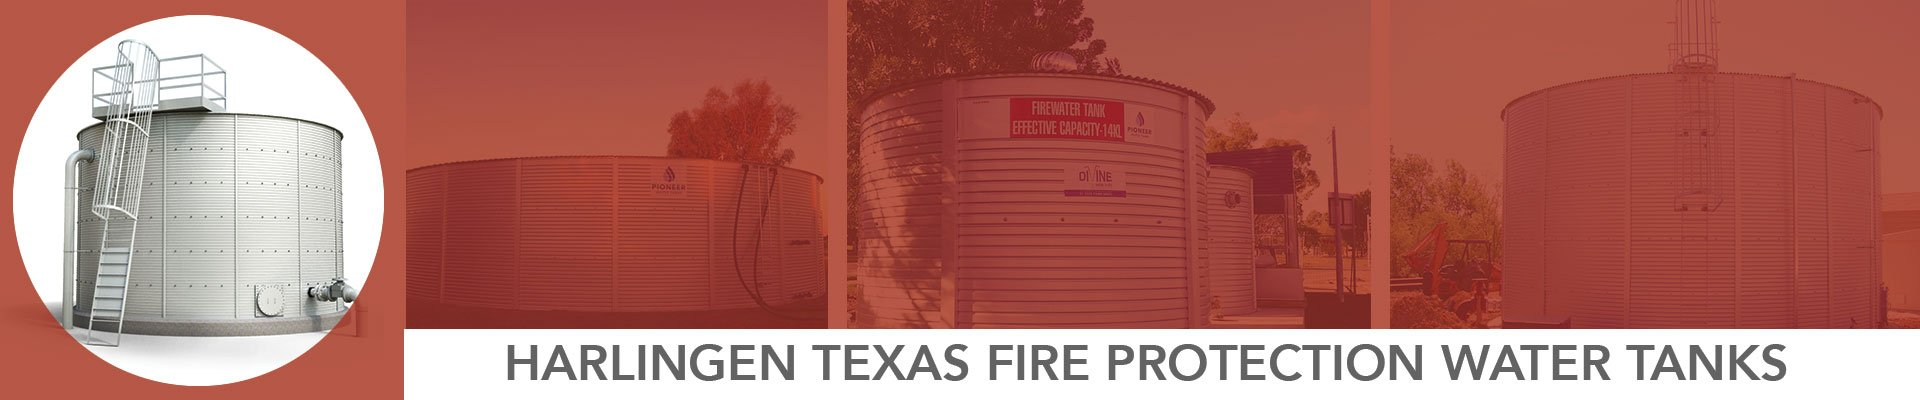 Harlingen Texas Fire Protection Water Tanks